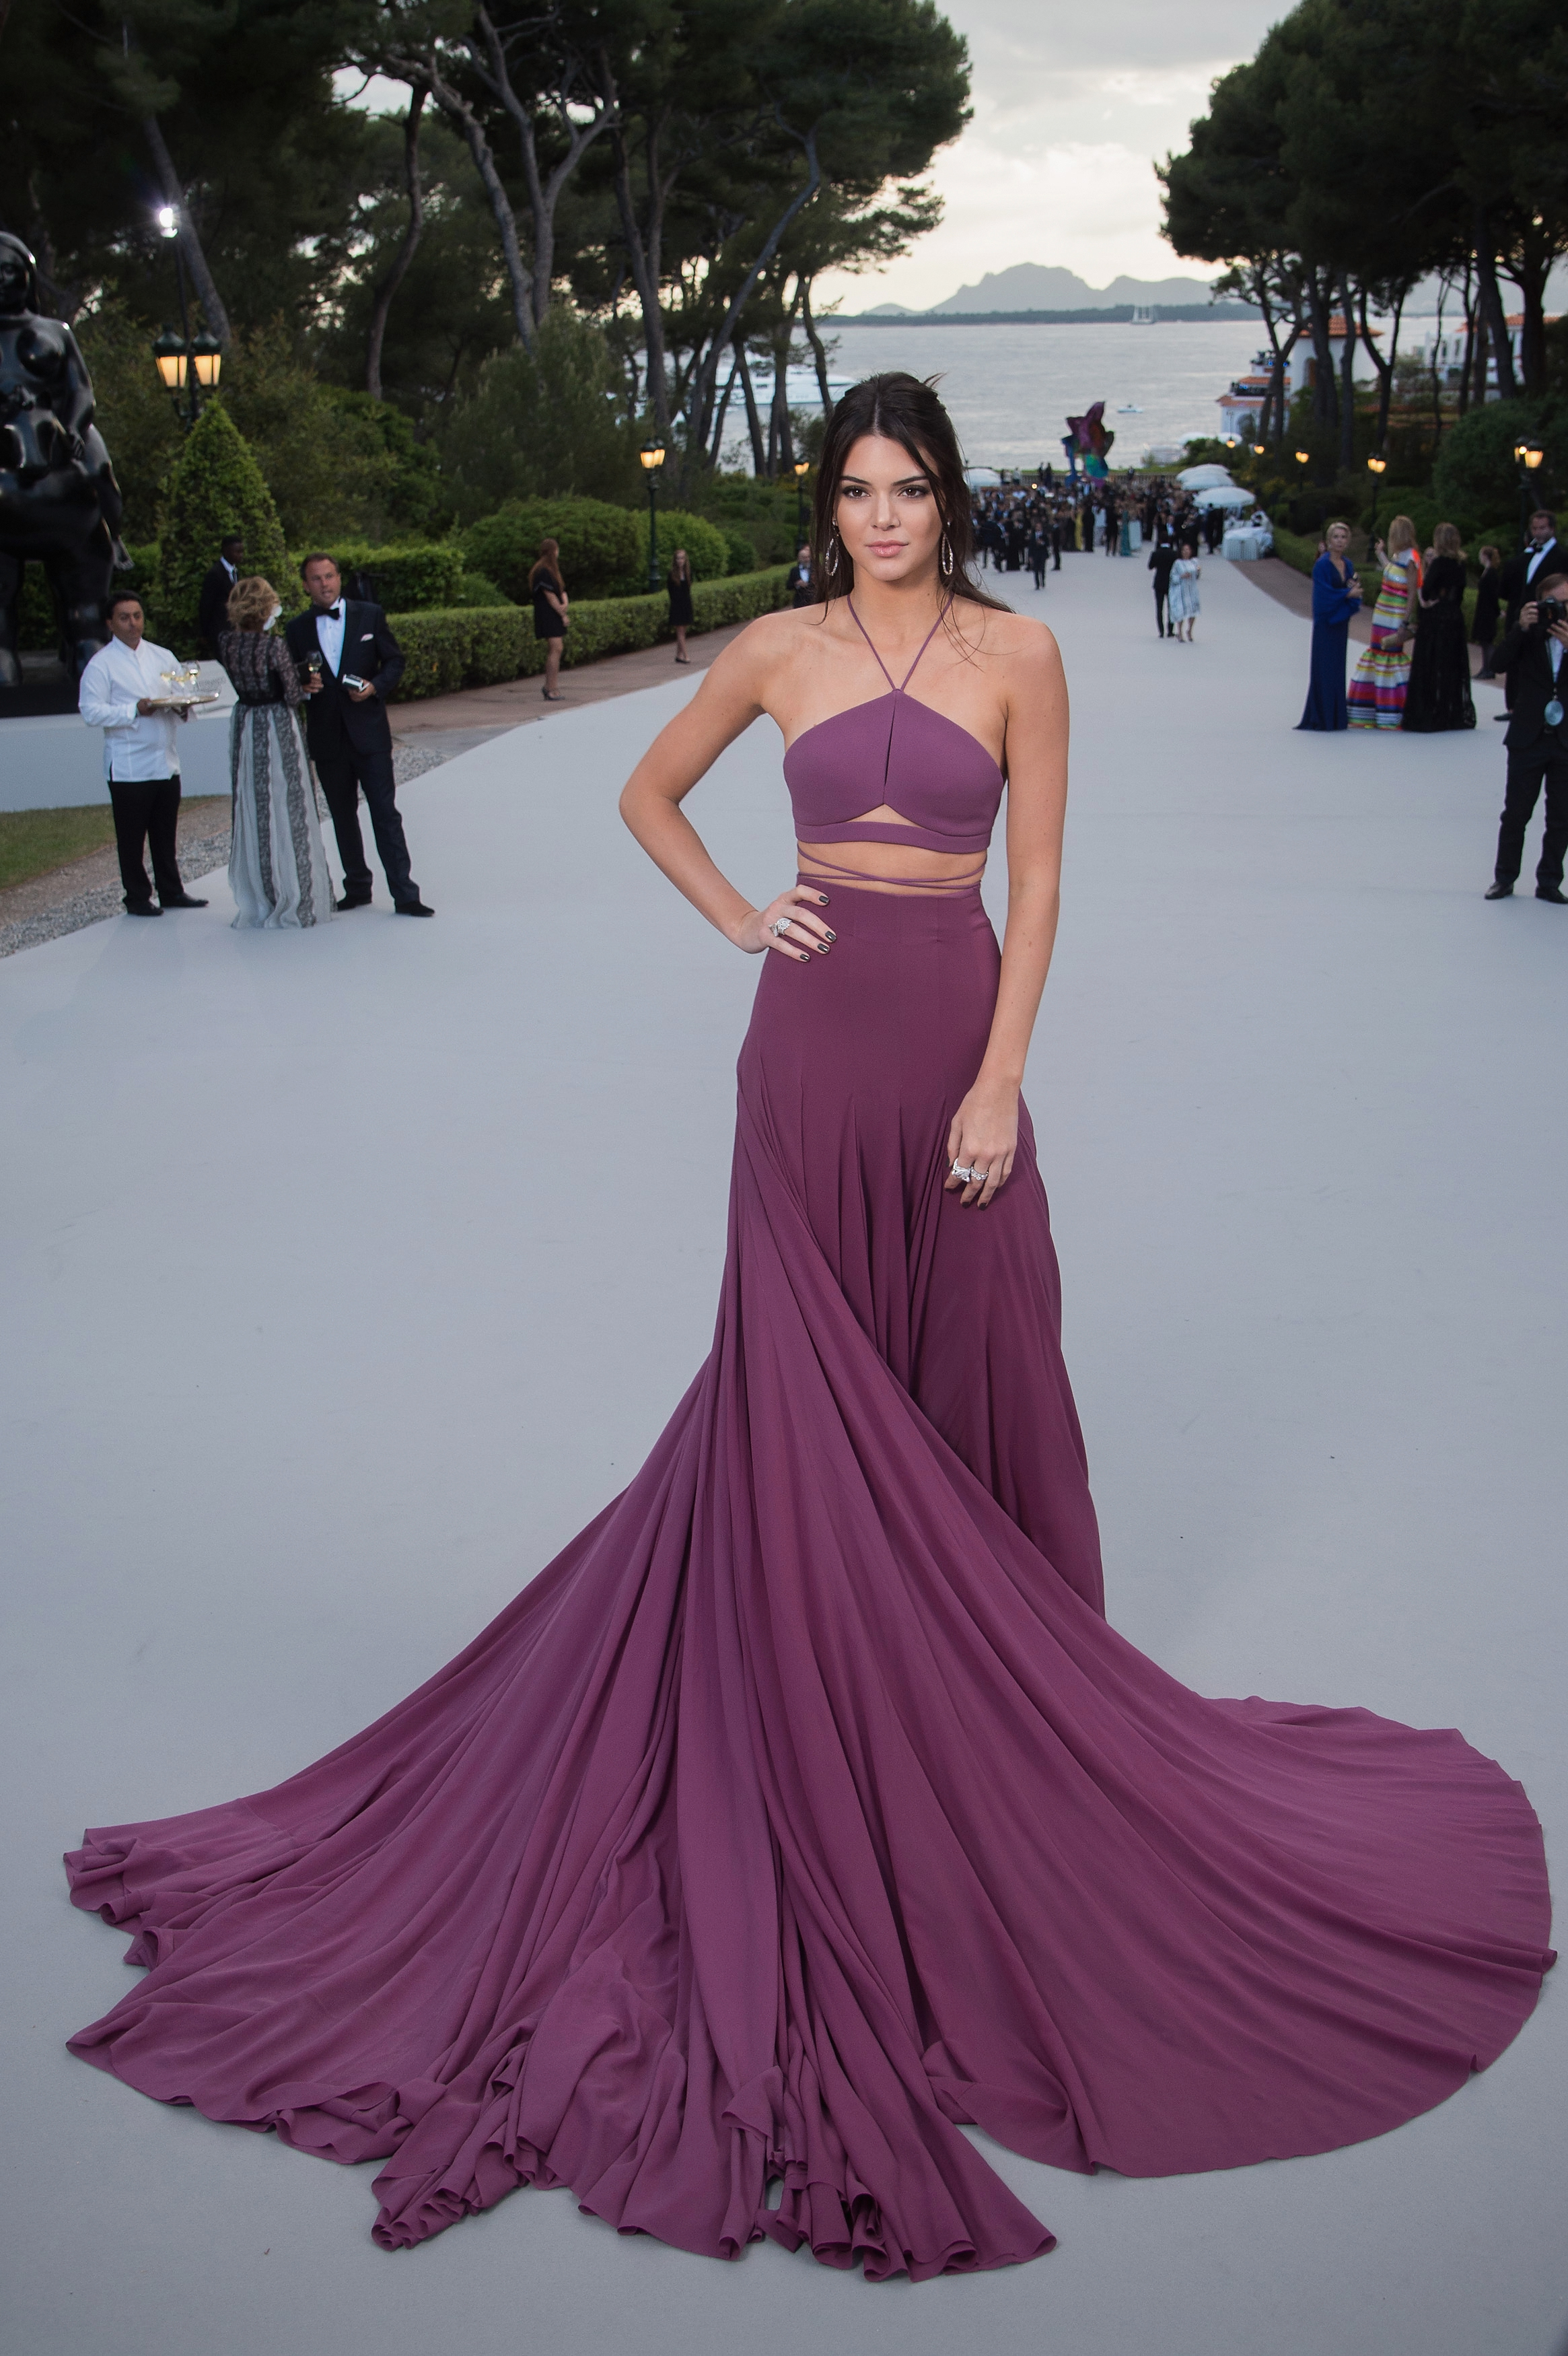 <p>Kendall Jenner wore Calvin Klein to the amfAR Cinema Against AIDS event in Cannes last night. Asone of the premier couture events of the year, the red carpetnever fails to impress. This year's gala includes a runway show curated bylegendary fashion editor Carine Roitfeld and music by Mark Ronson.</p>